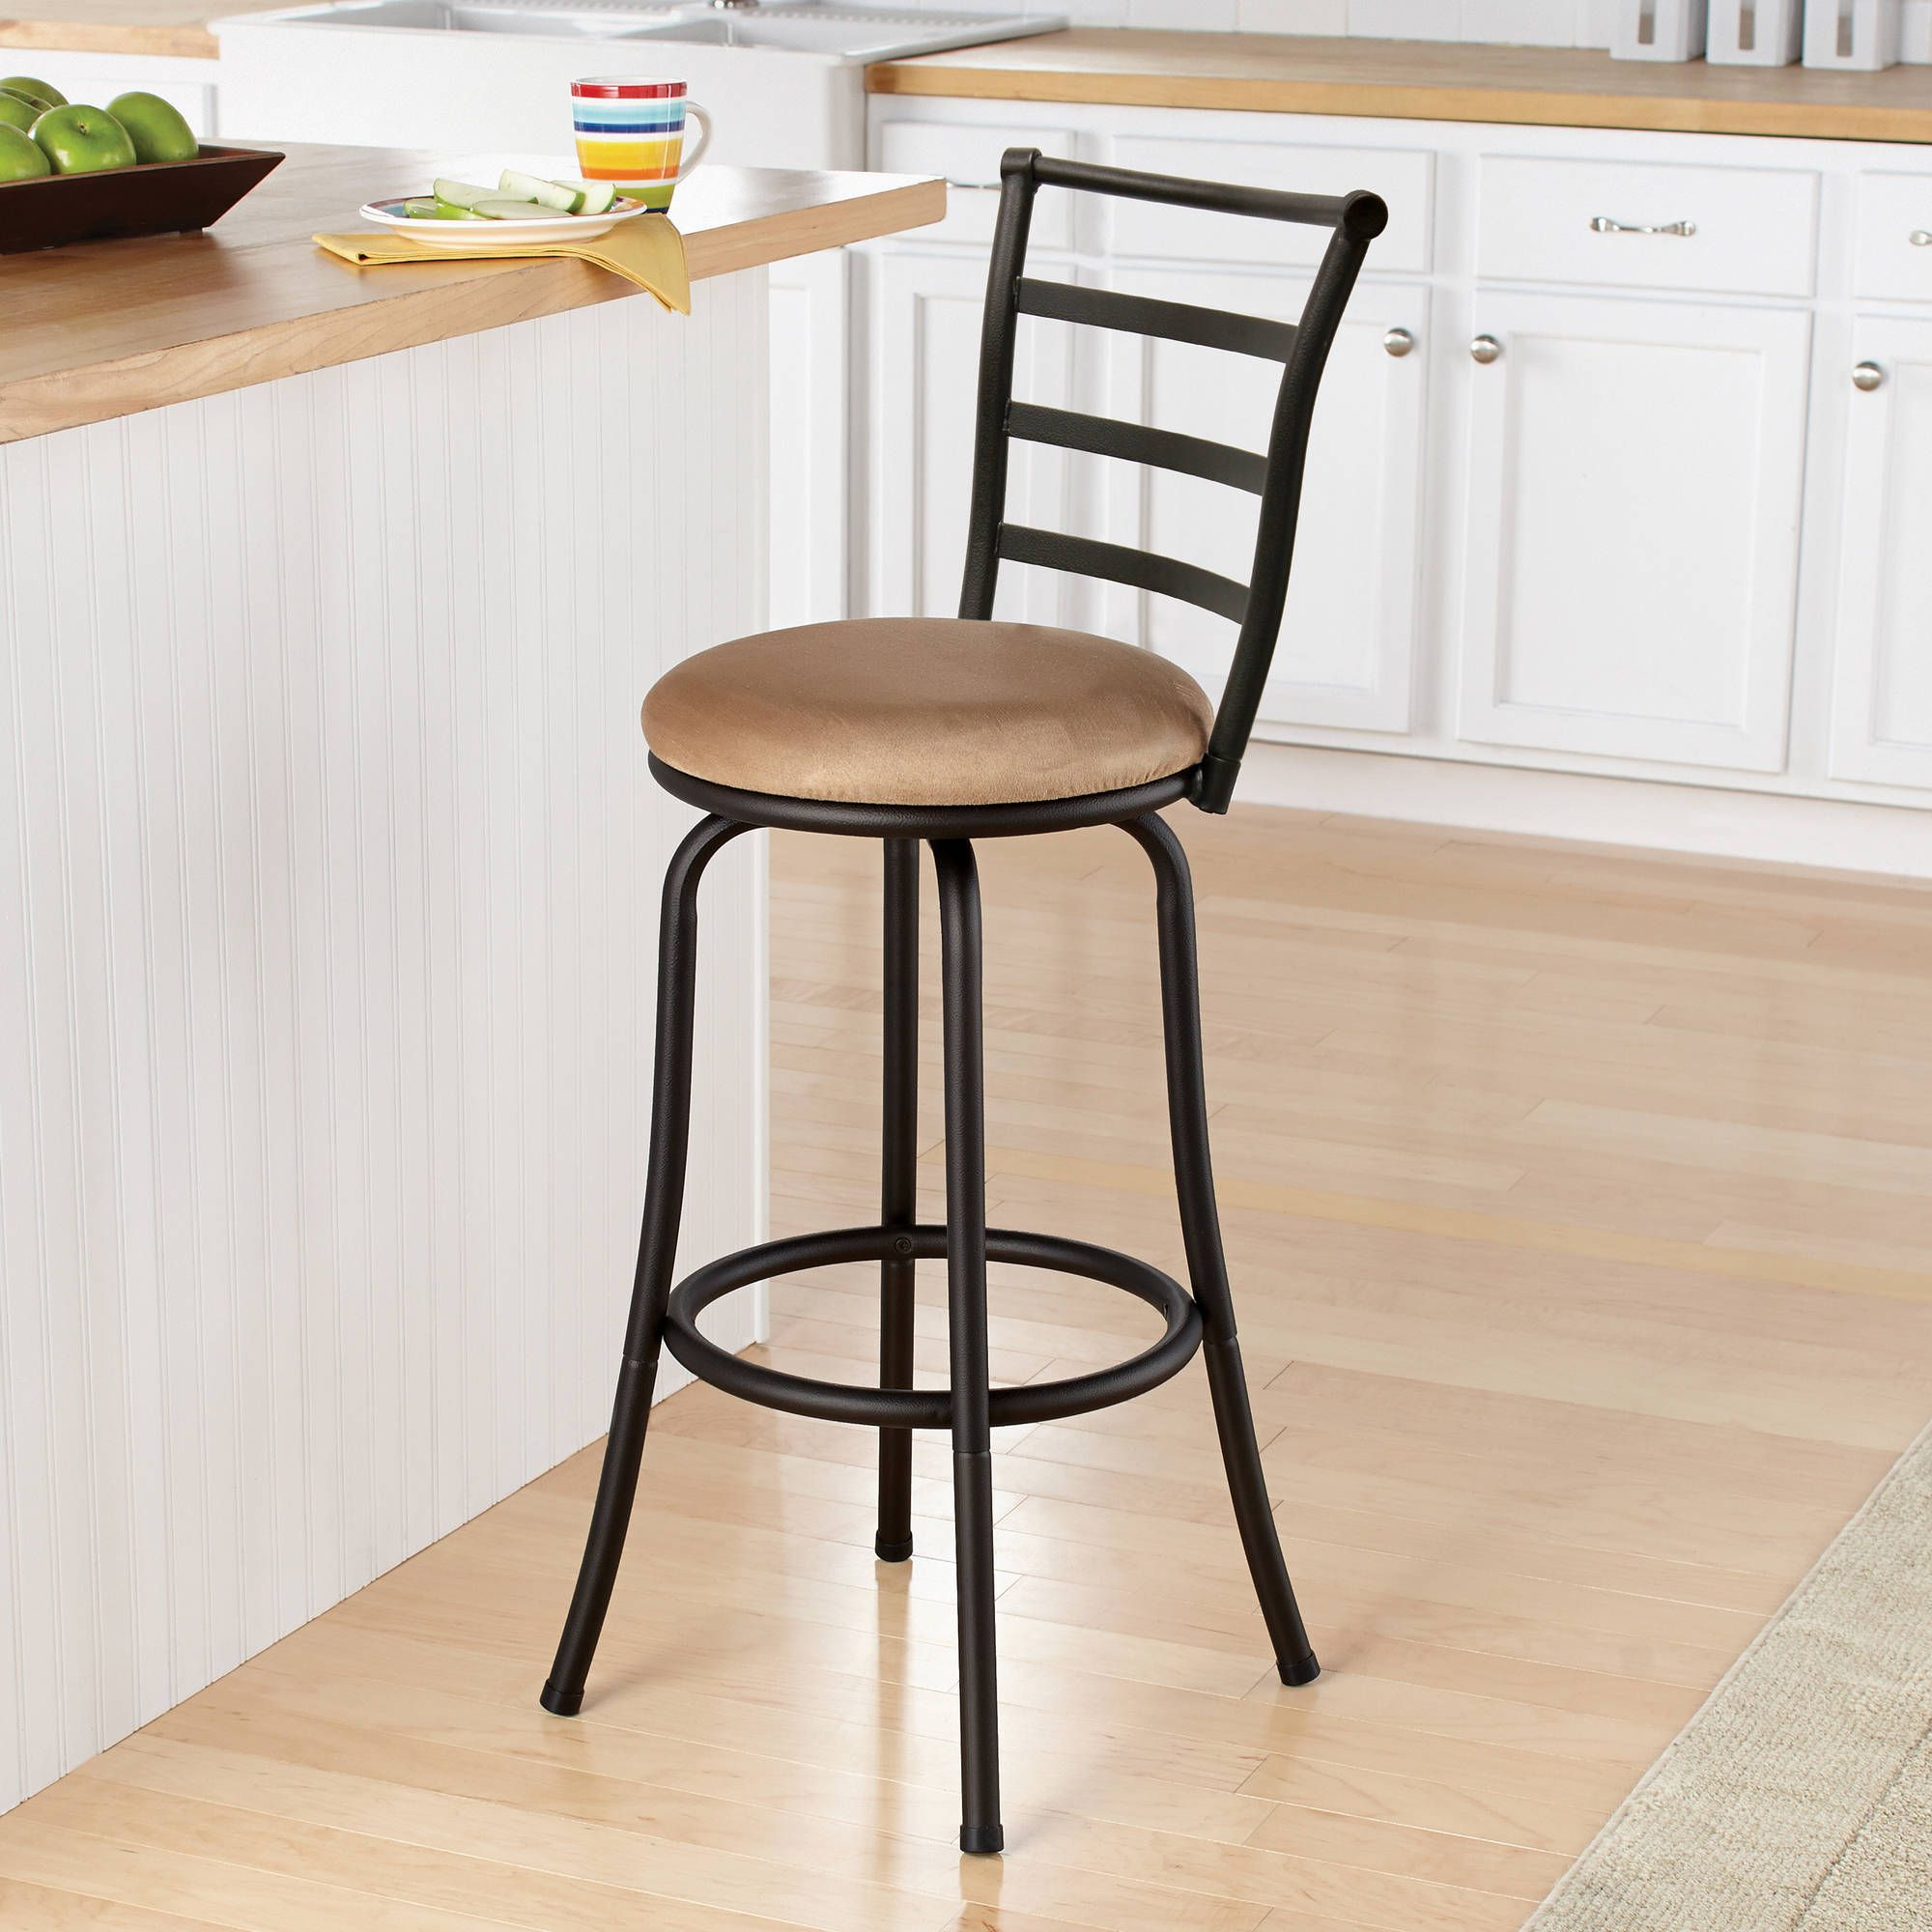 Bar Chair Walmart in 9  Bar stools, Bar stools with backs